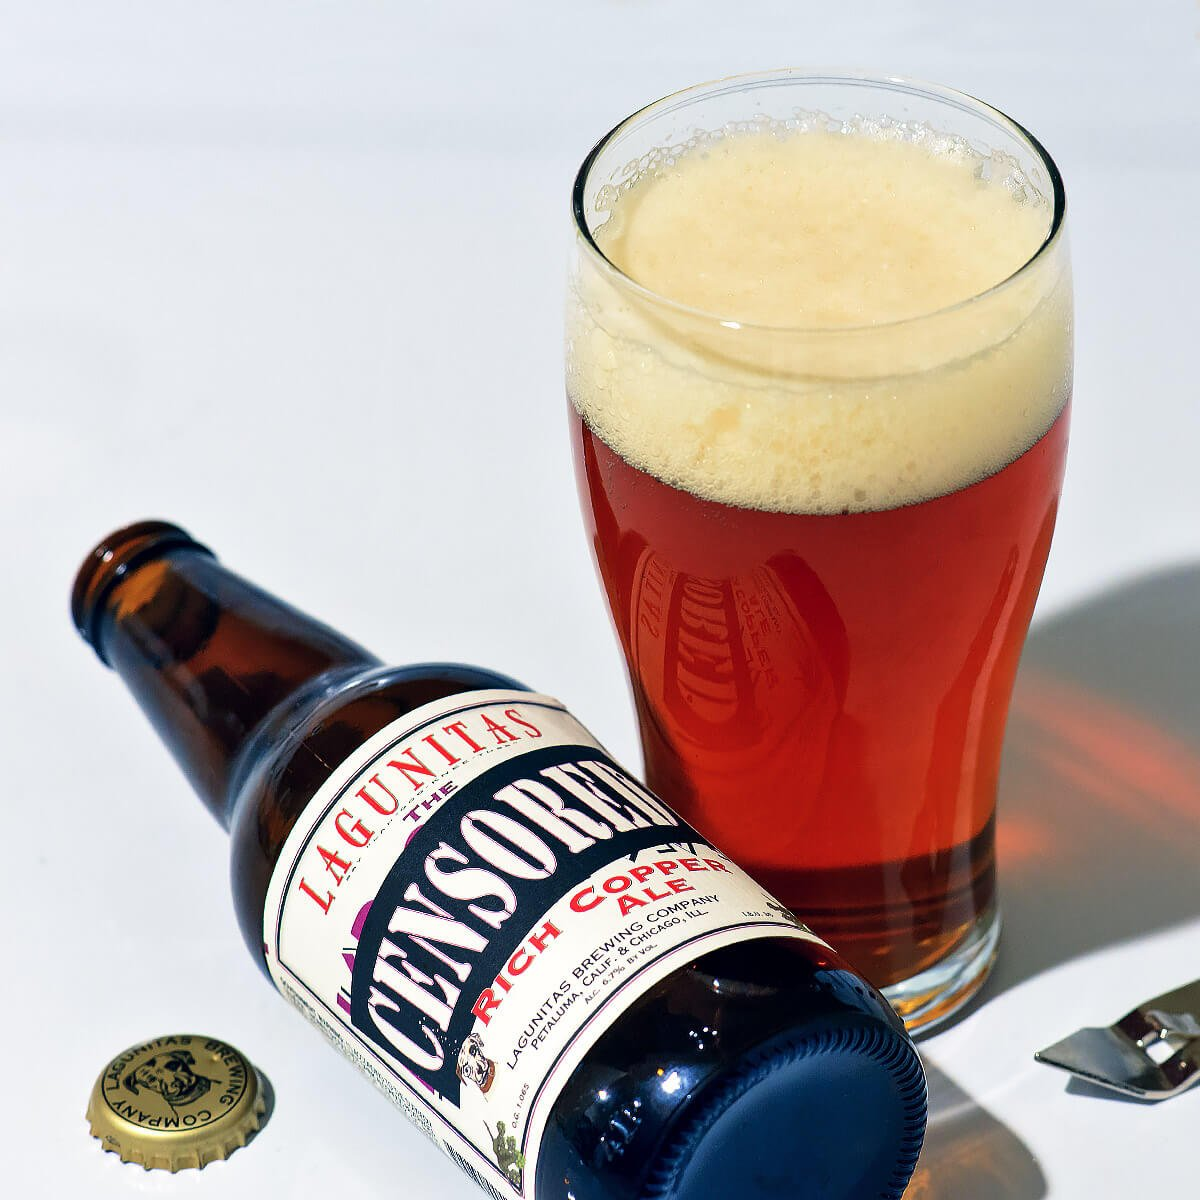 Censored, an American Amber Ale by Lagunitas Brewing Company